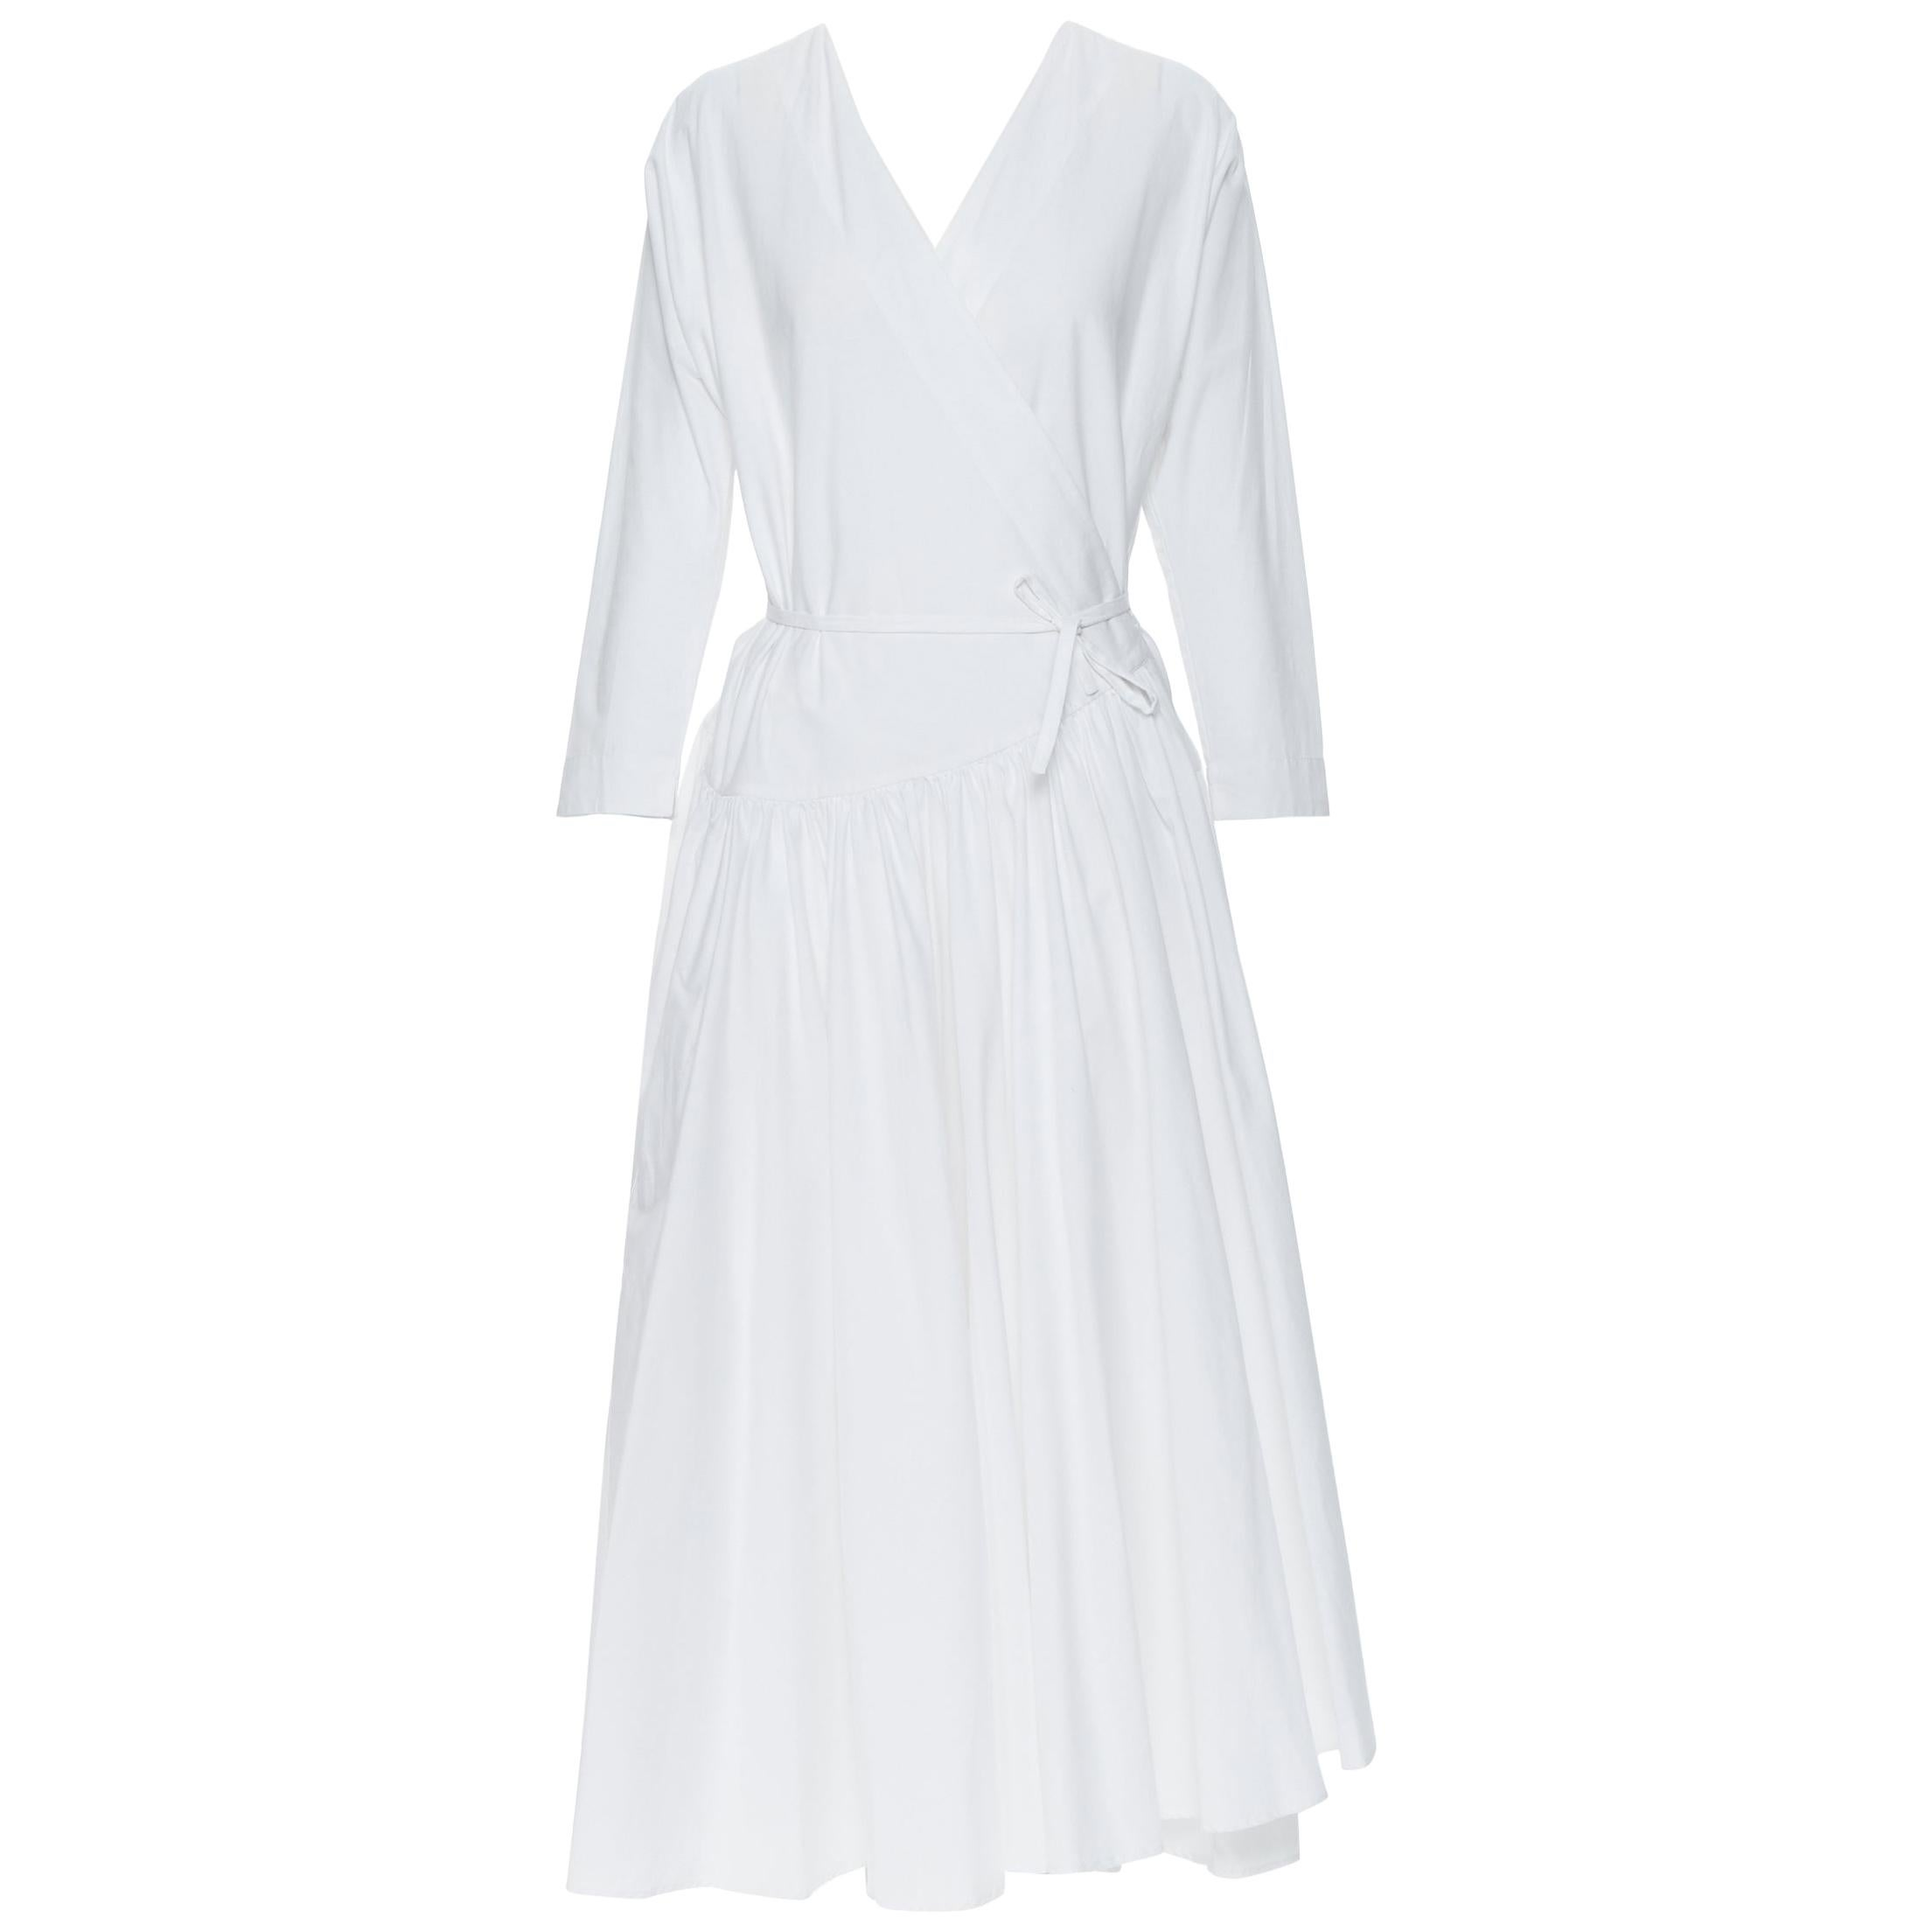 ROSETTA GETTY white cotton wrap front self tie flared casual midi day dress XS